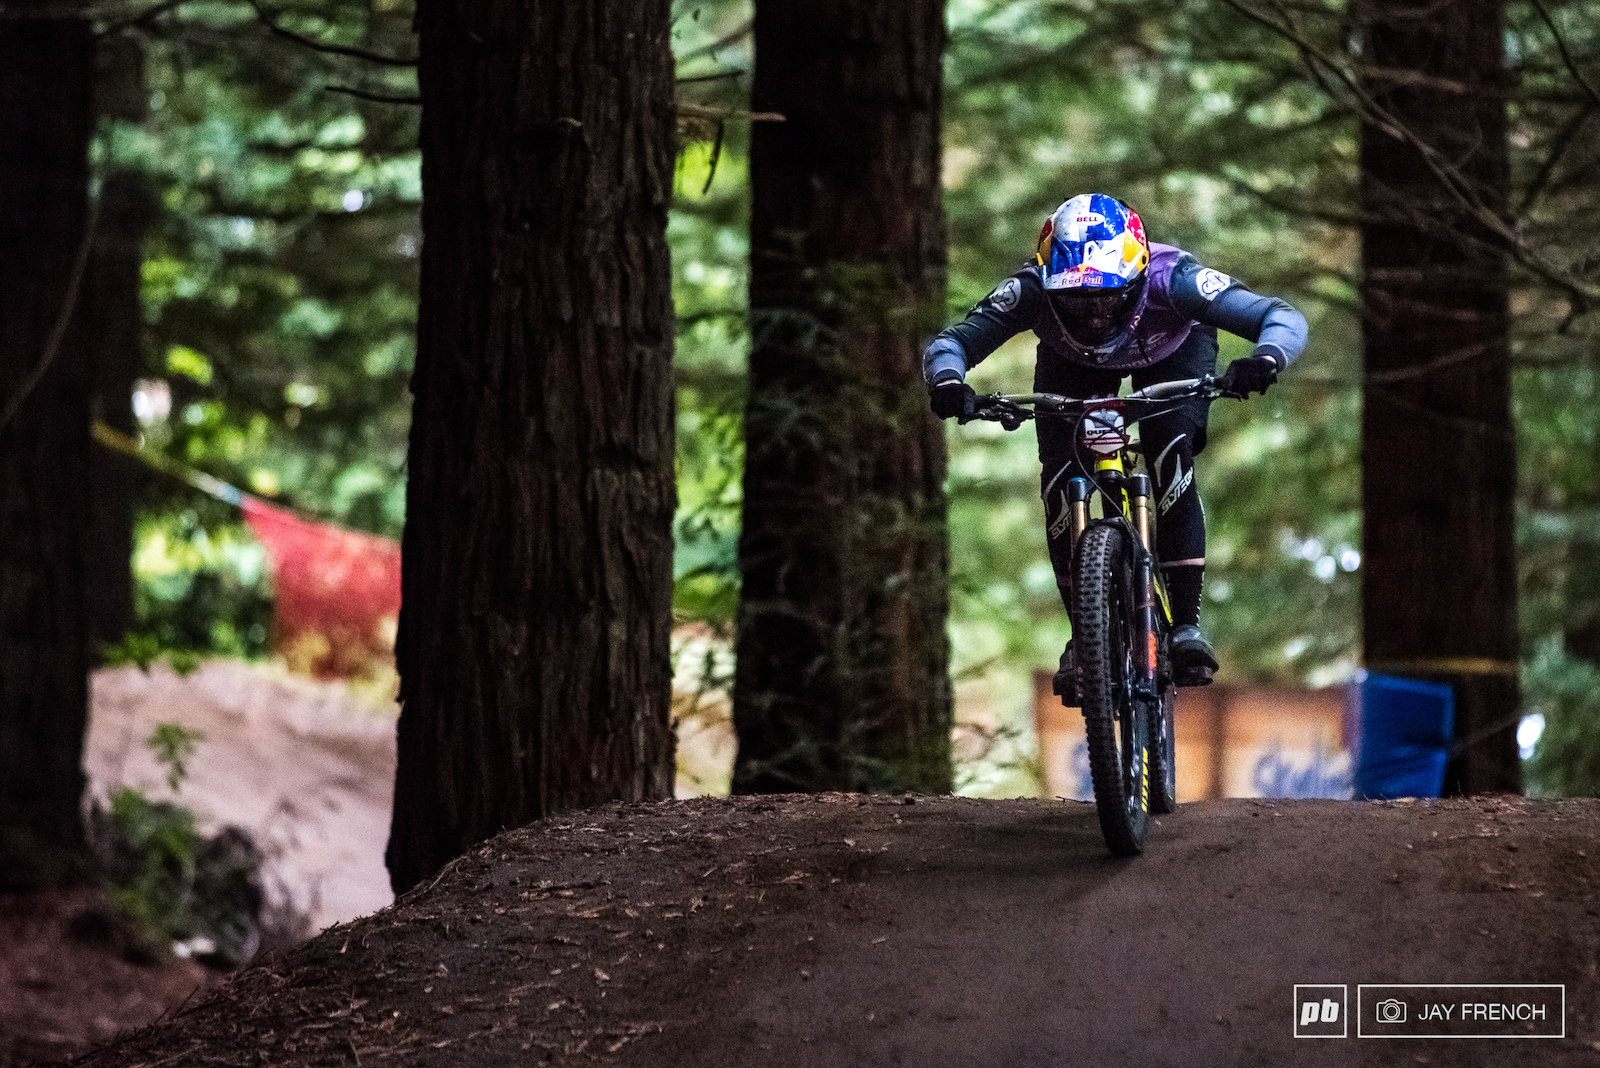 Jill made 2nd today and secured herself another Queen of Crankworx result.